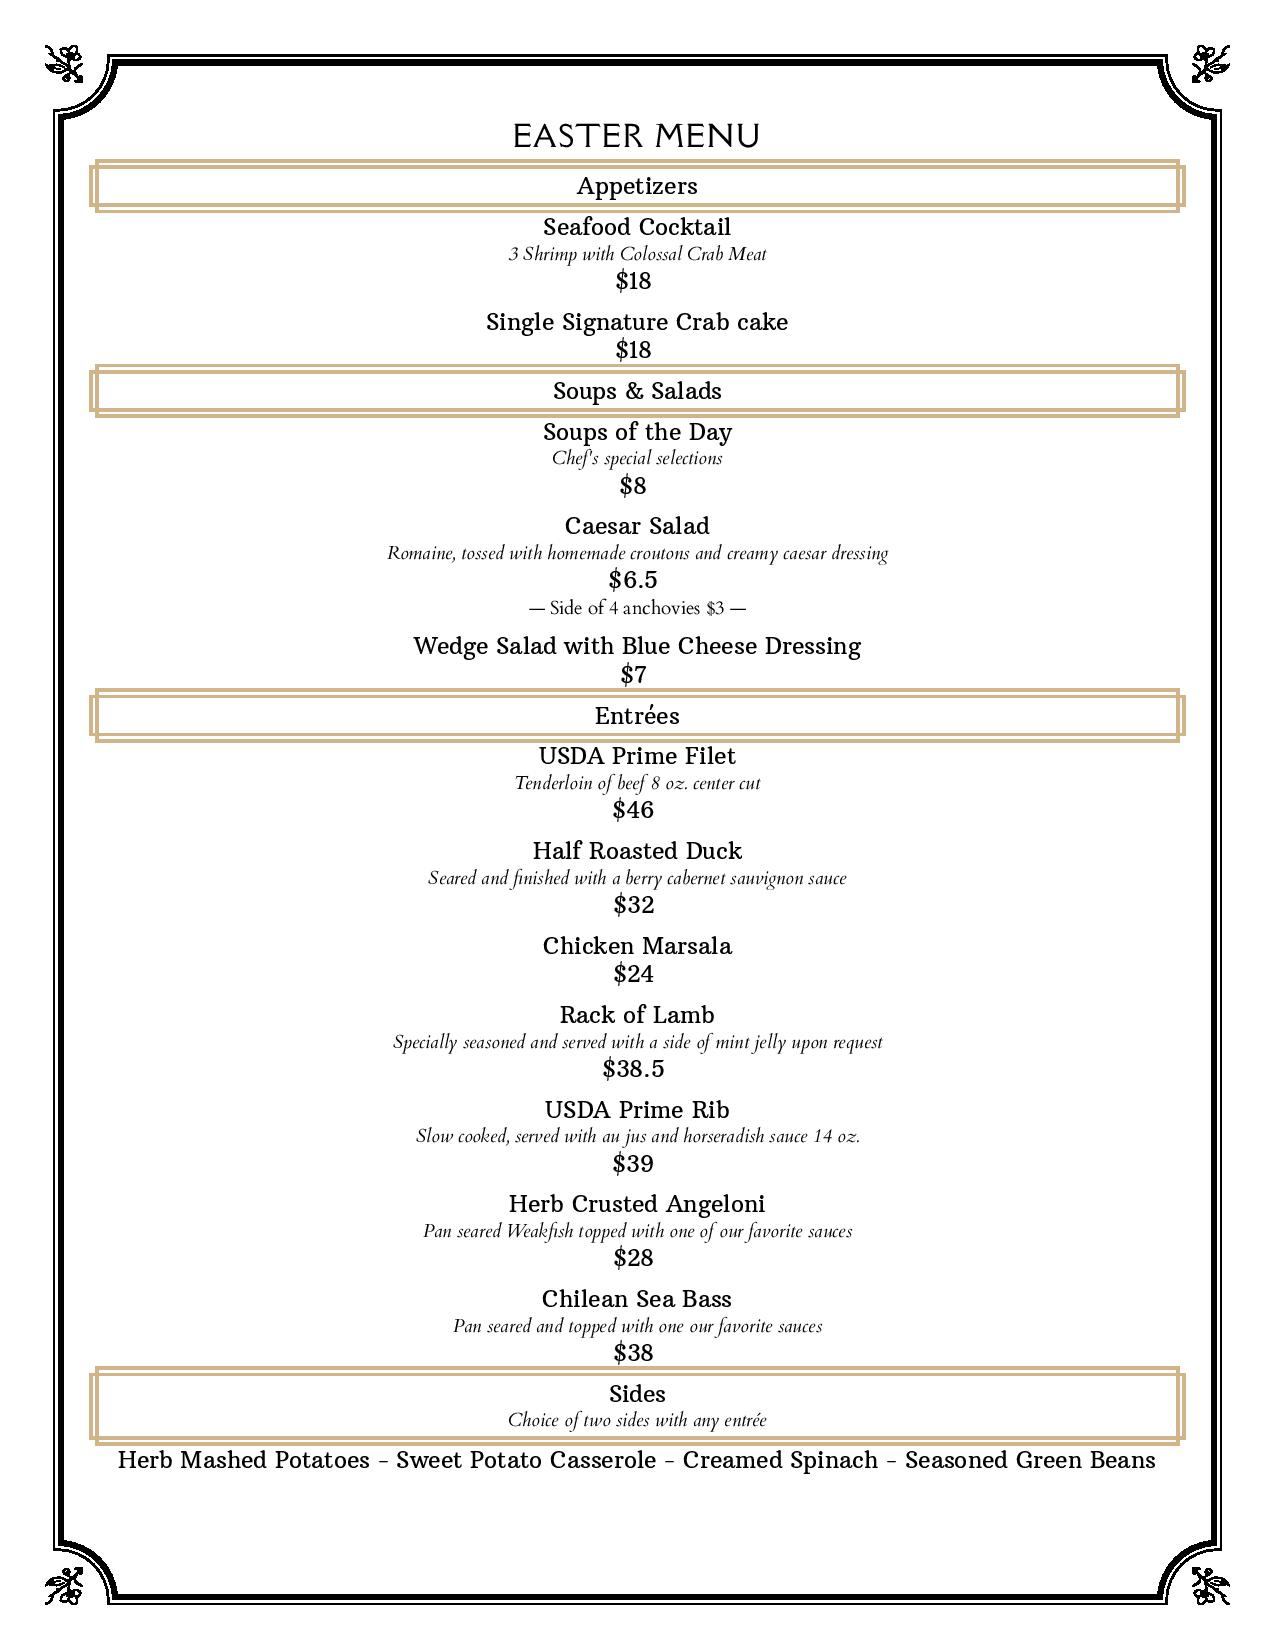 The Rose Plantation - Easter Menu